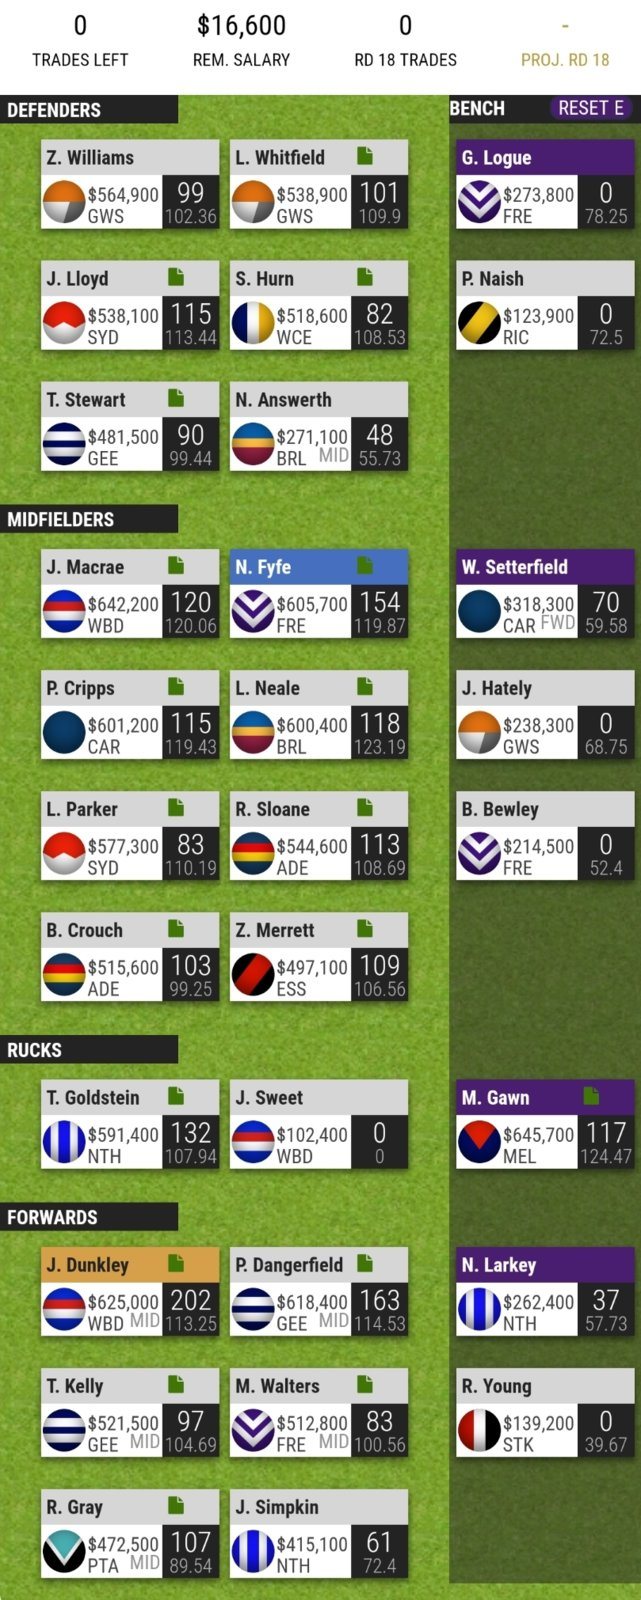 Screenshot_20190718-121311_SuperCoach.jpg